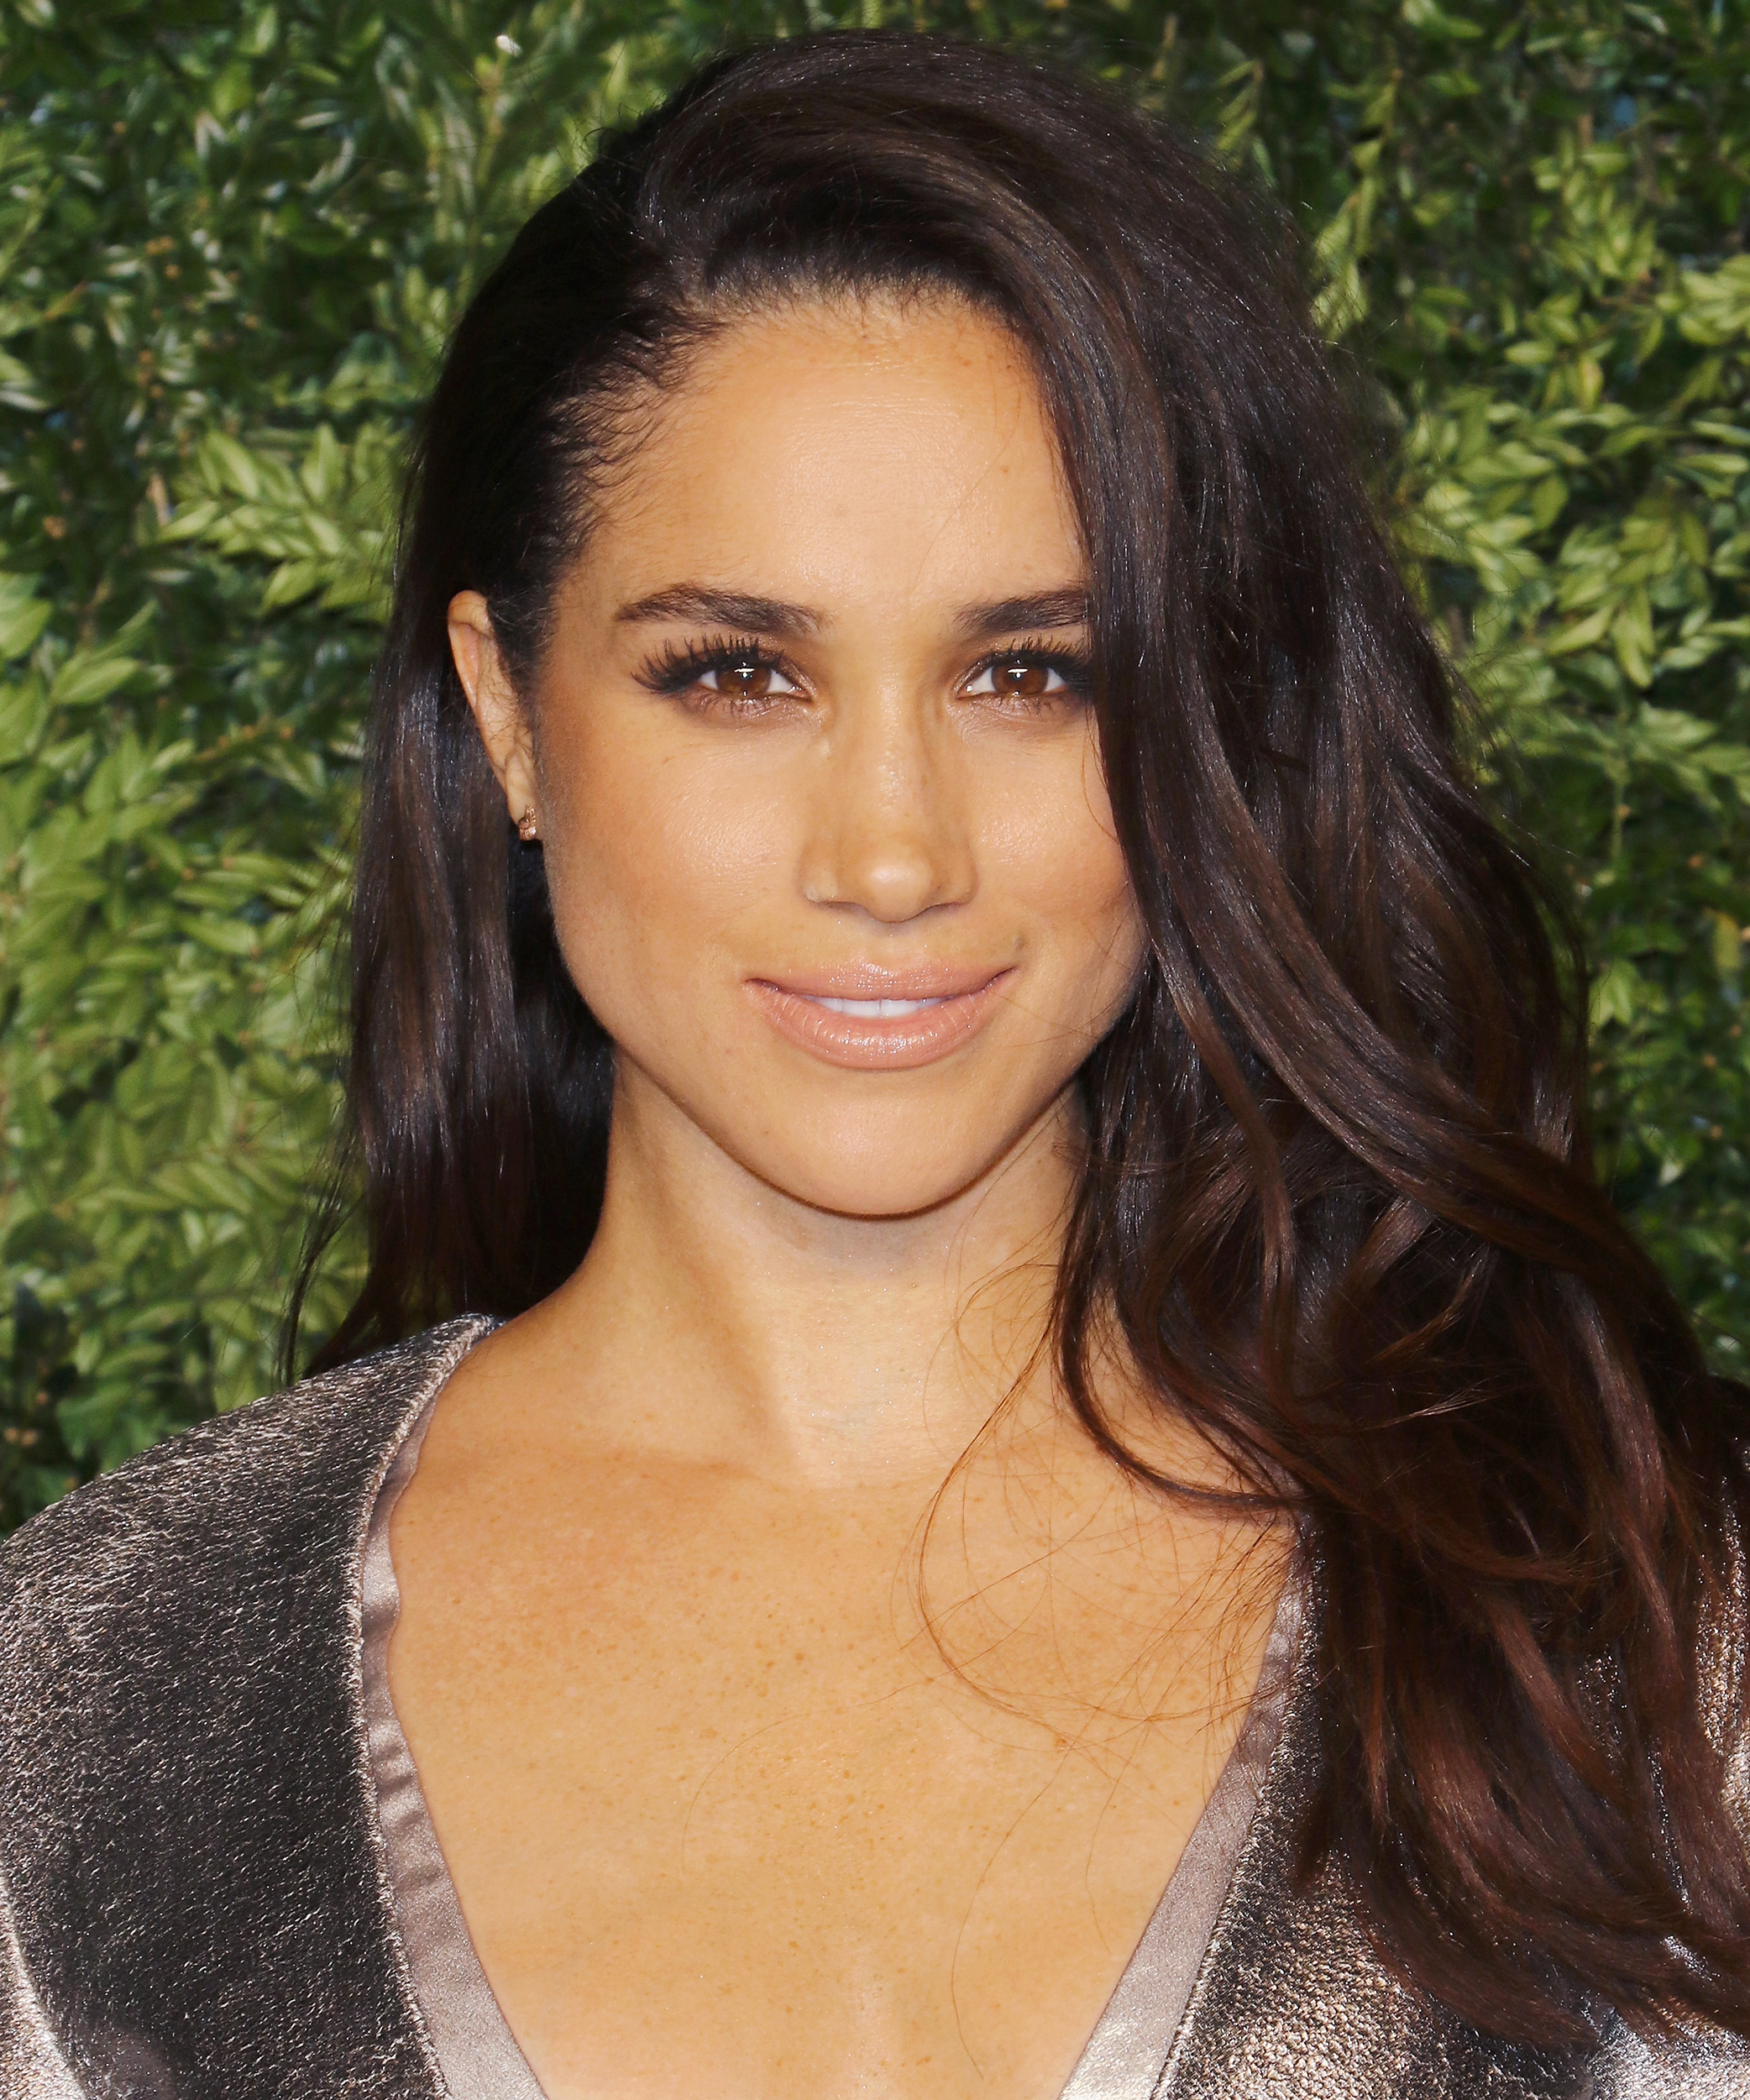 Meghan Markle Shuts Down Her Lifestyle Site, Says Farewell